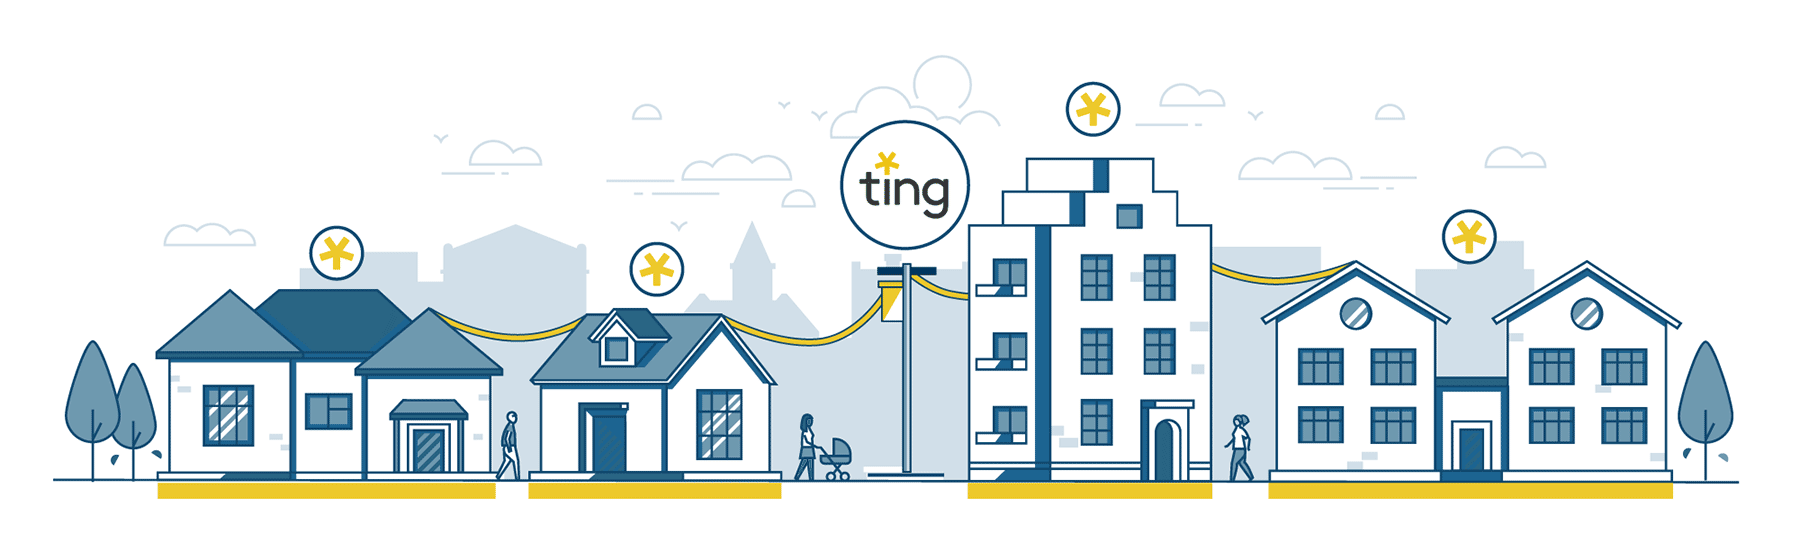 Ting-Neighborhood-Connectivity